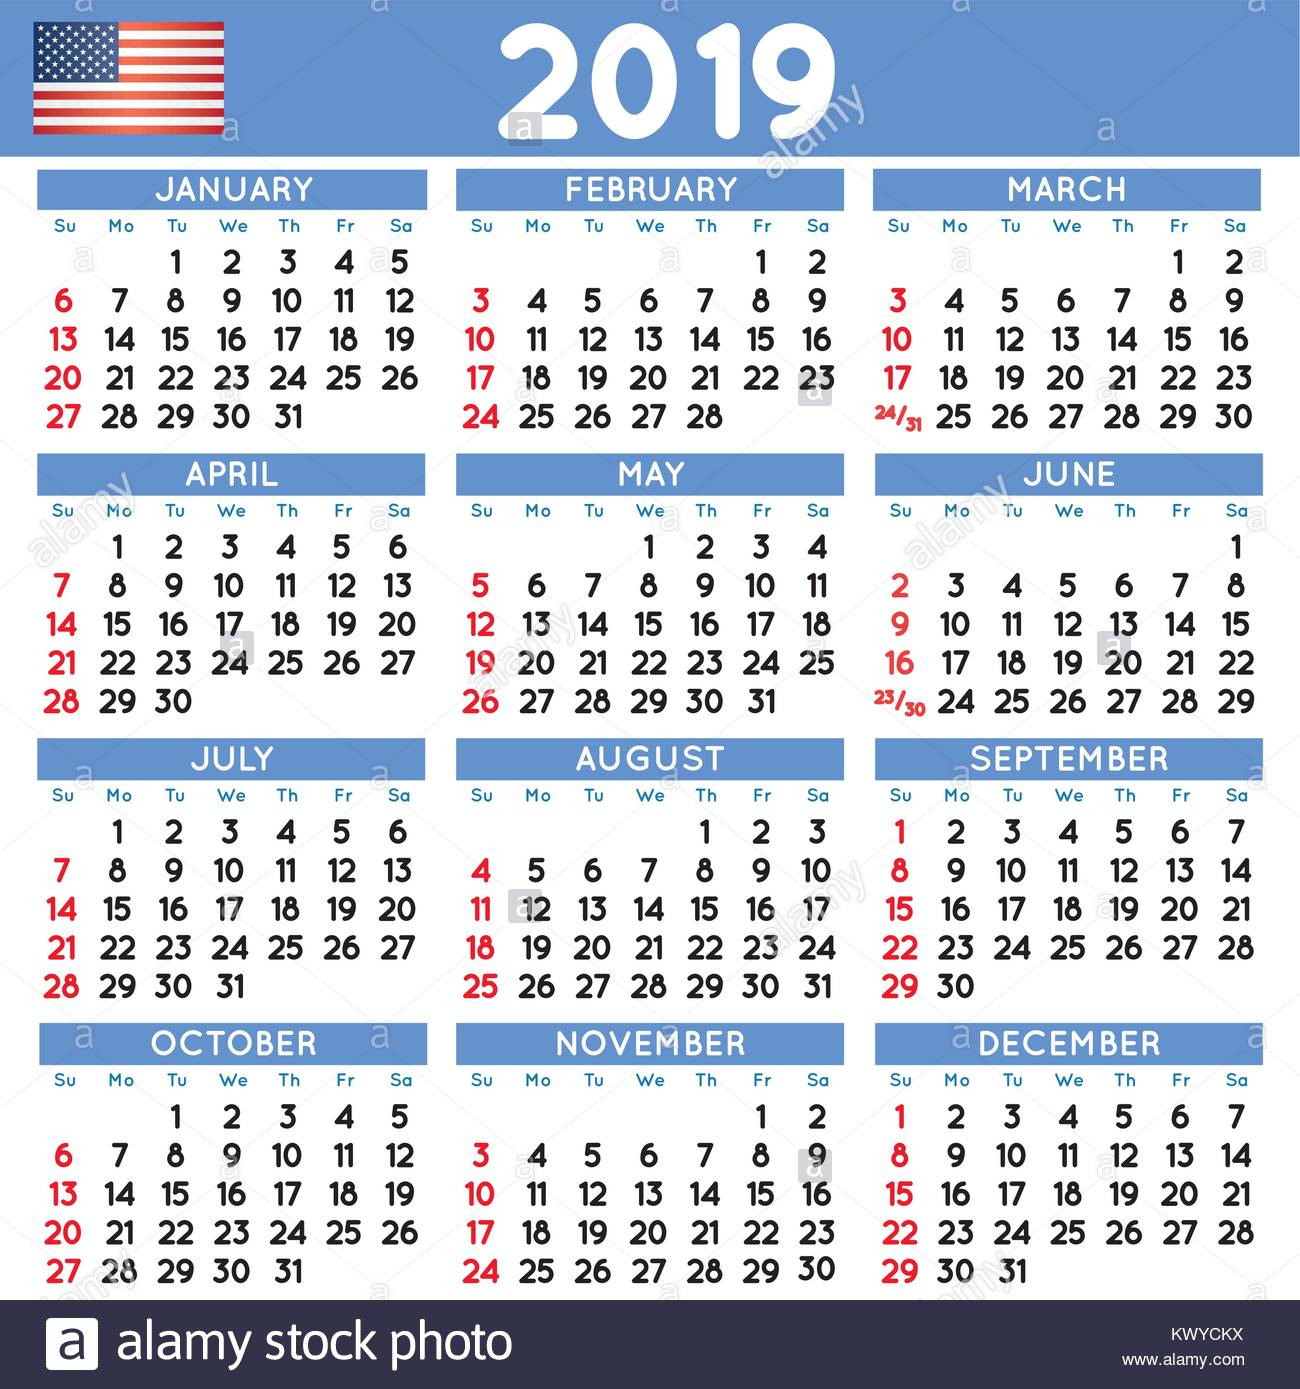 2019 elegant squared calendar english usa year 2019 calendar calendar 2019 file easy to edit and apply week starts on sunday